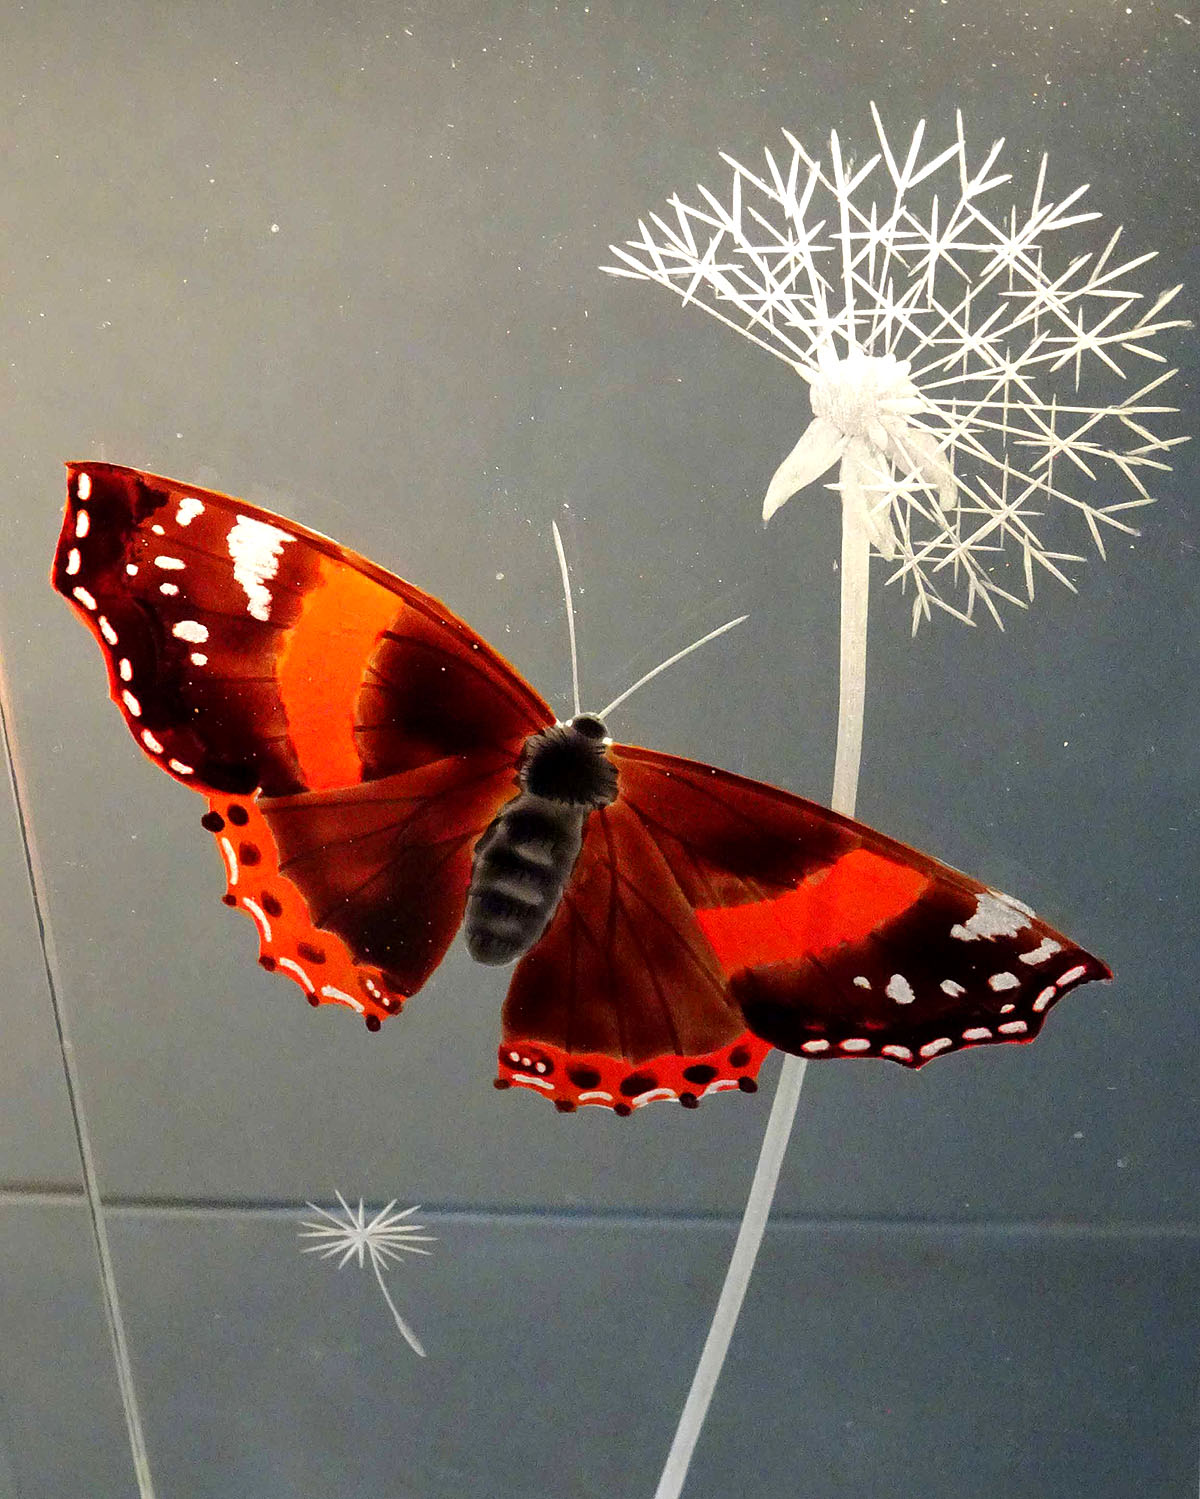 Alison Kinnaird, 'Red Admiral Butterfly', engraved and enamelled glass